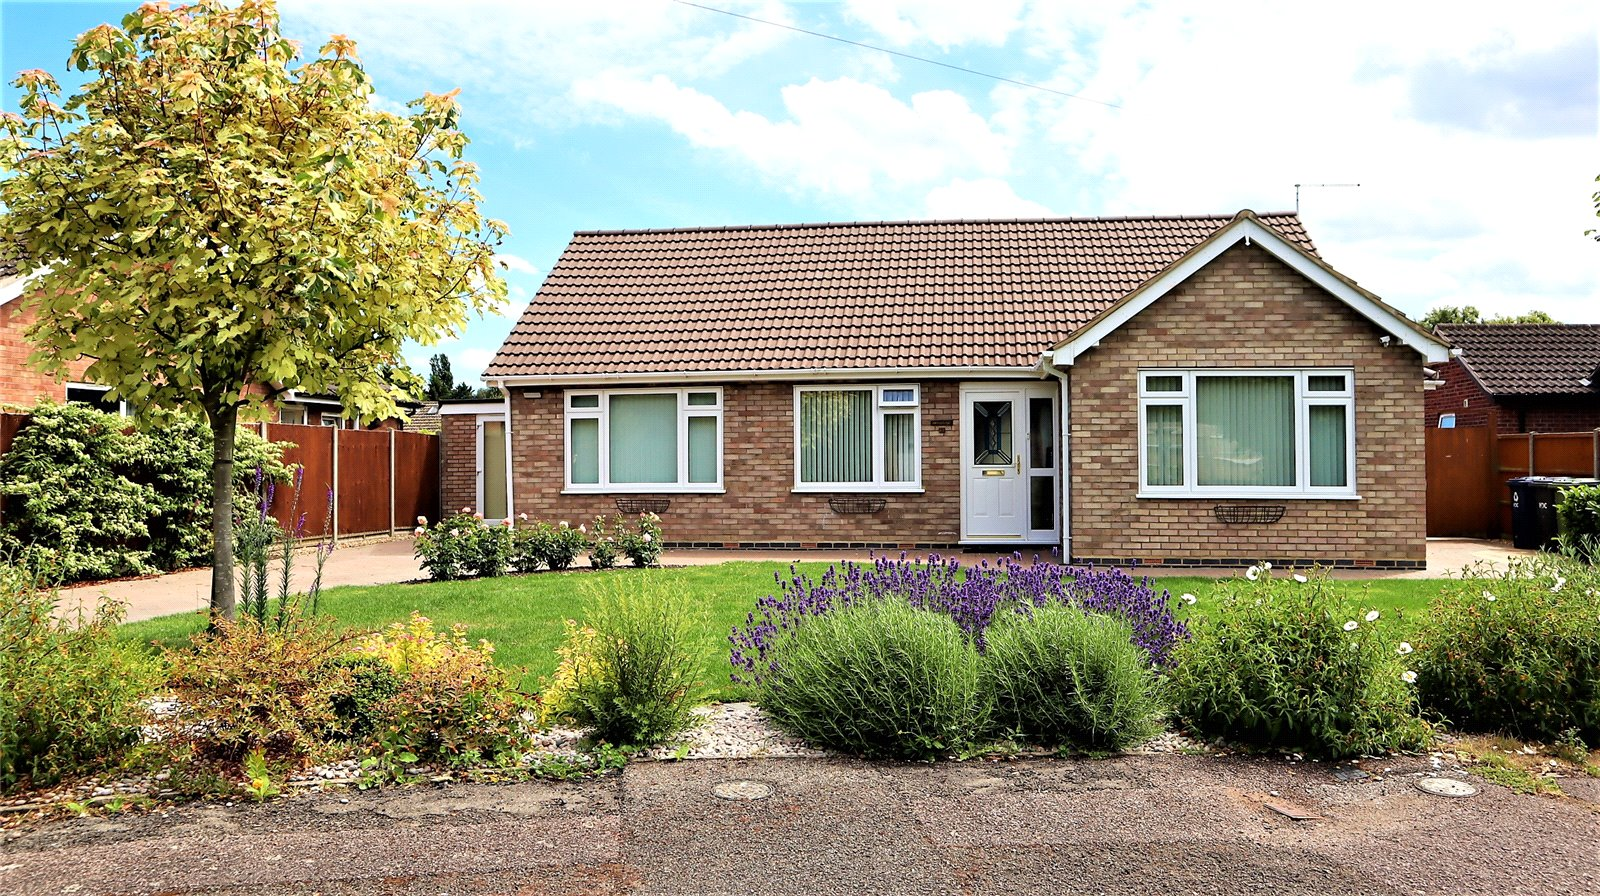 3 bed bungalow for sale in Eaton Socon, Peppercorn Lane, PE19 8HL 0